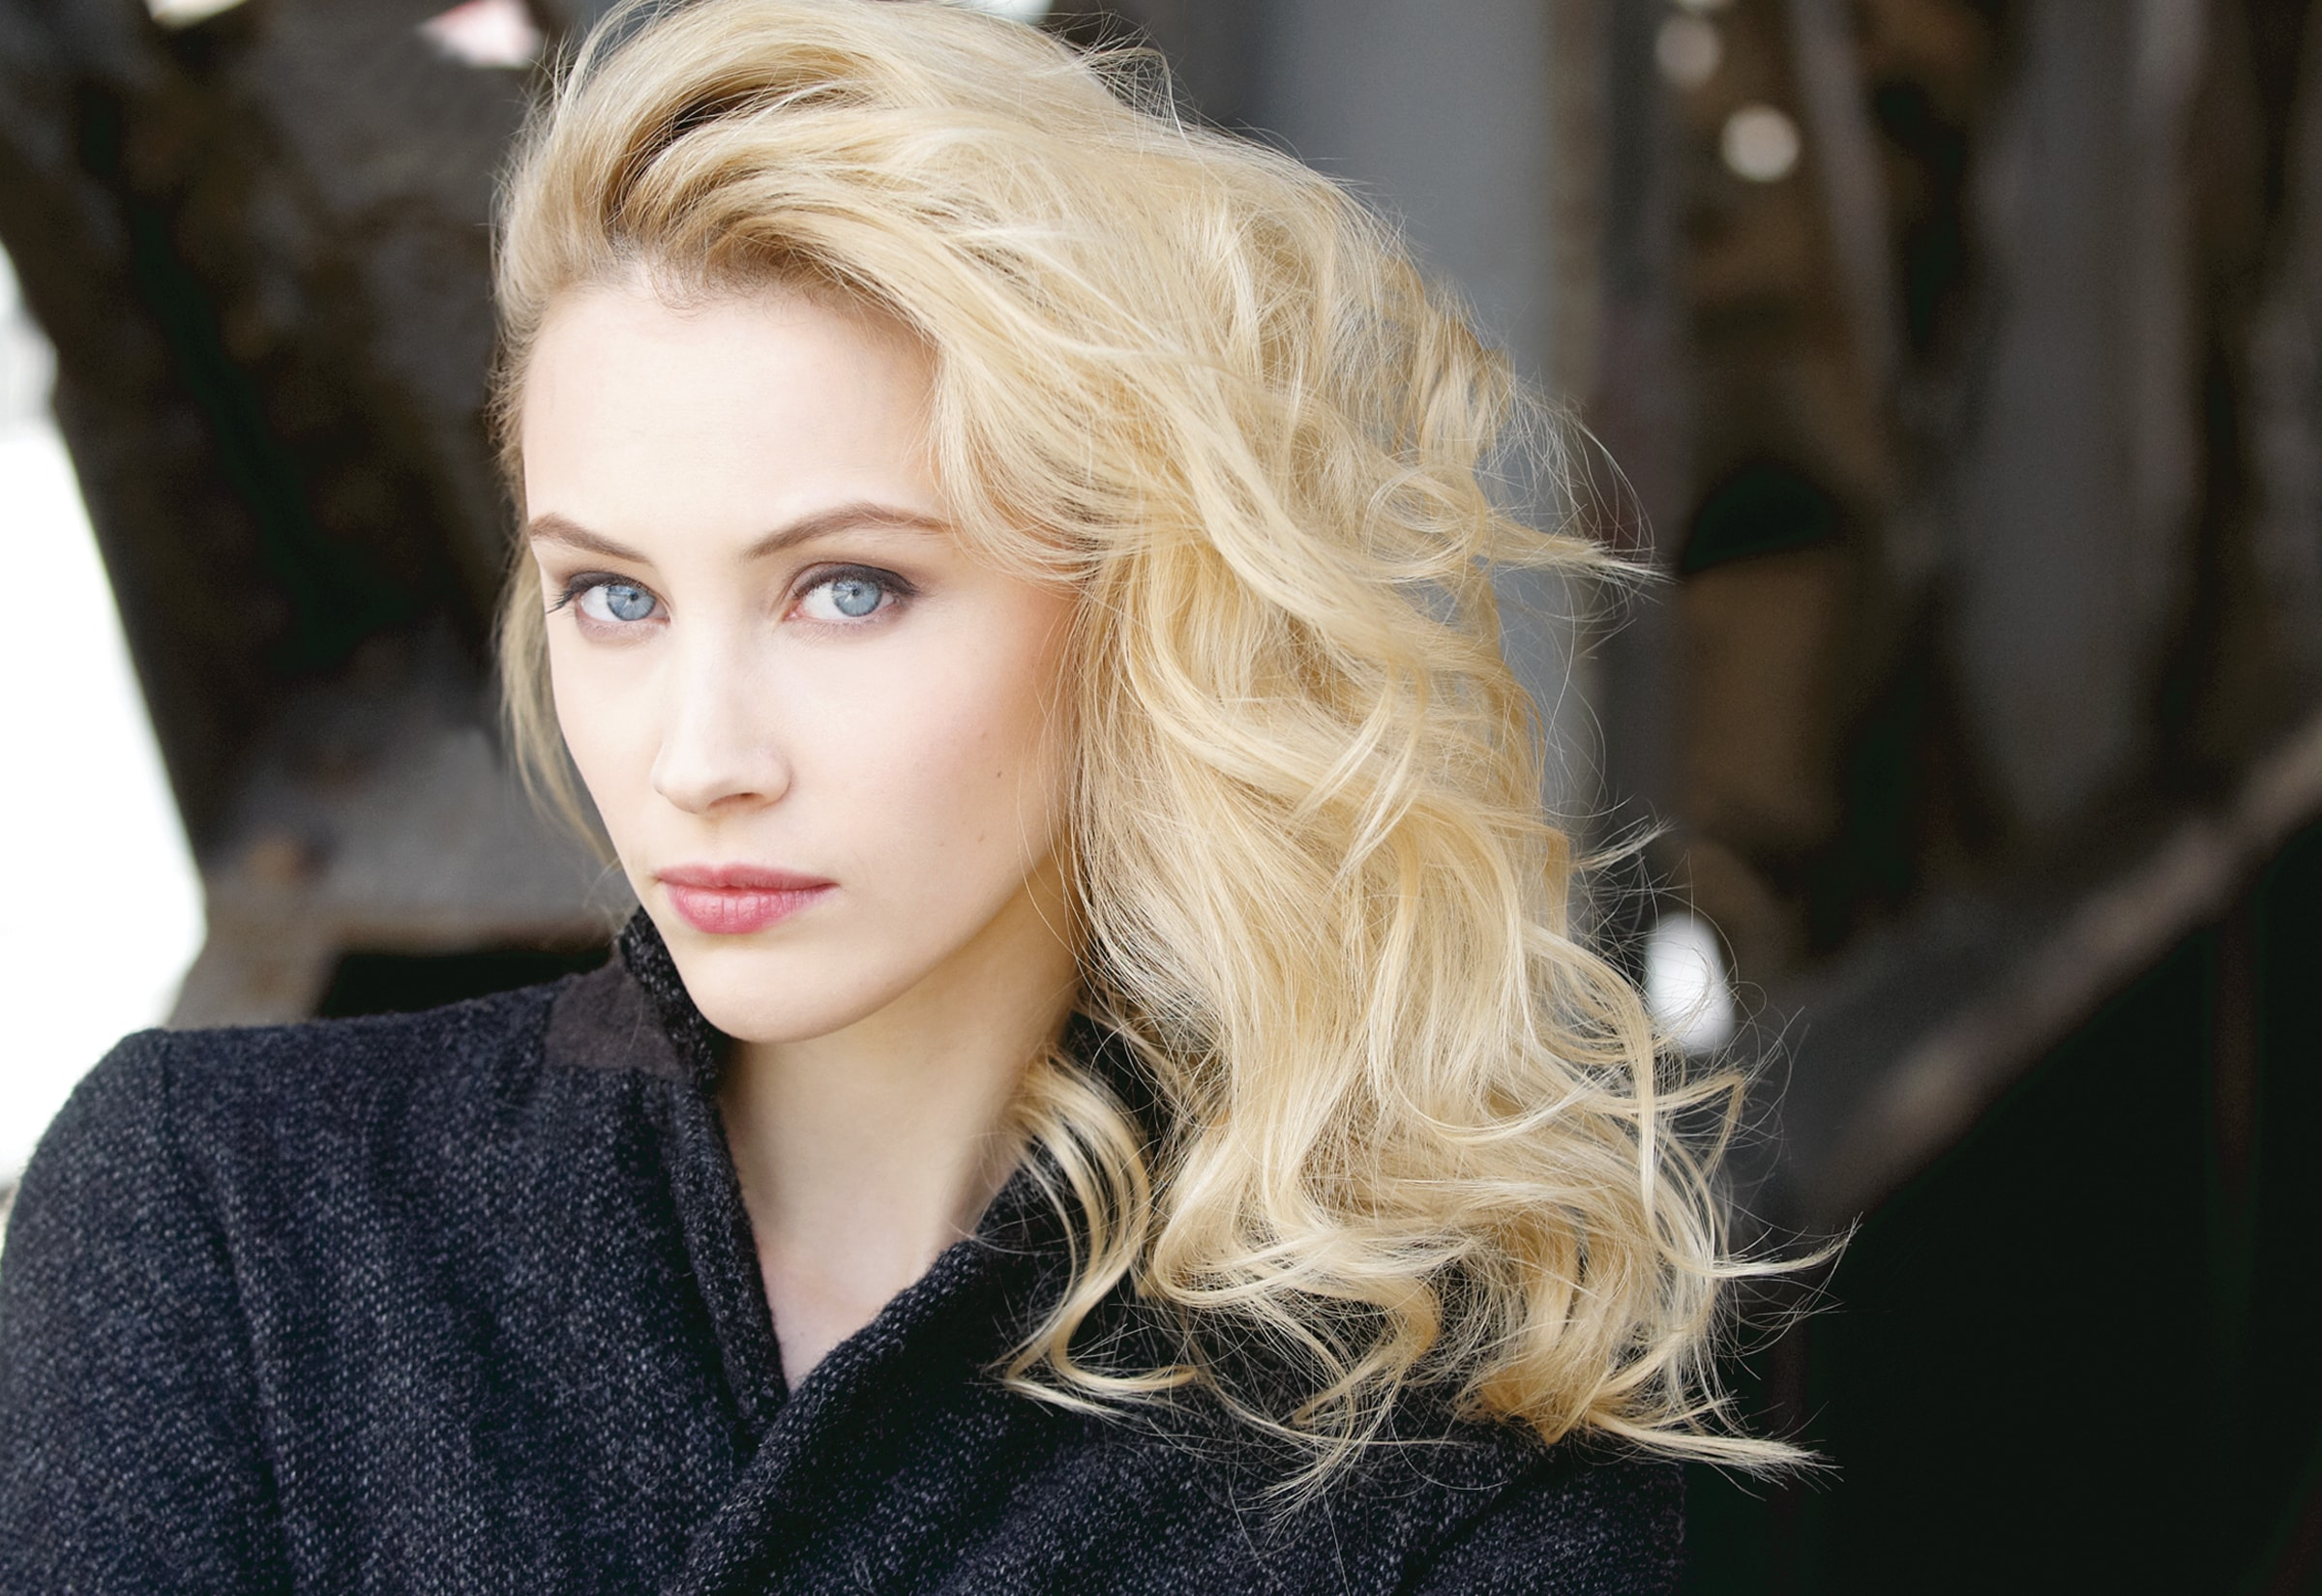 Sarah Gadons Desktop wallpaper